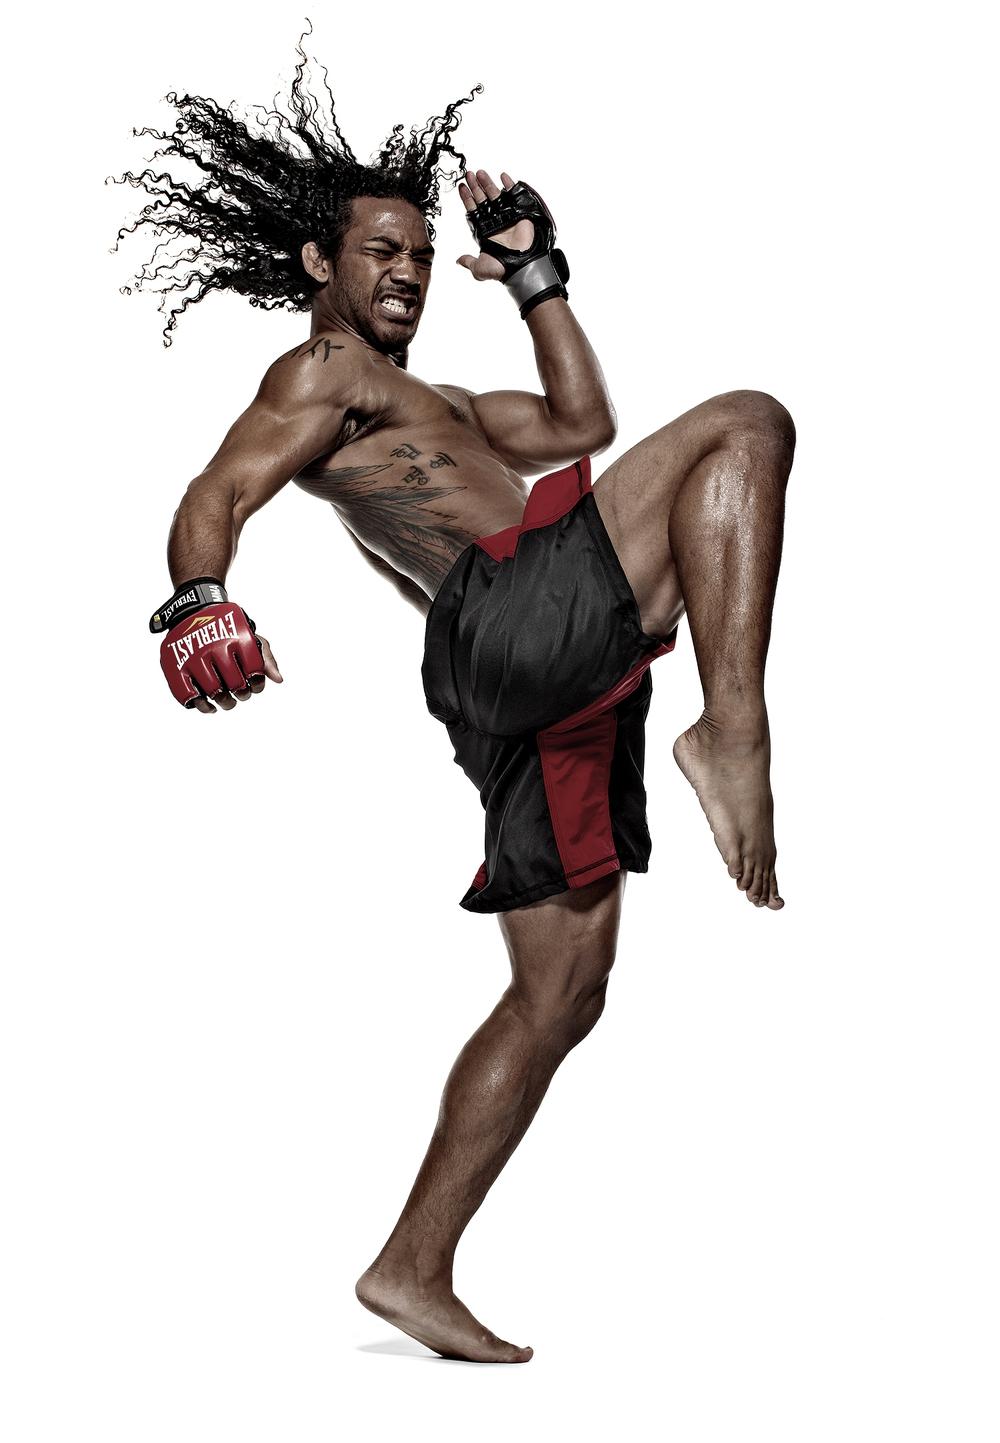 ben henderson / everlast unleashed